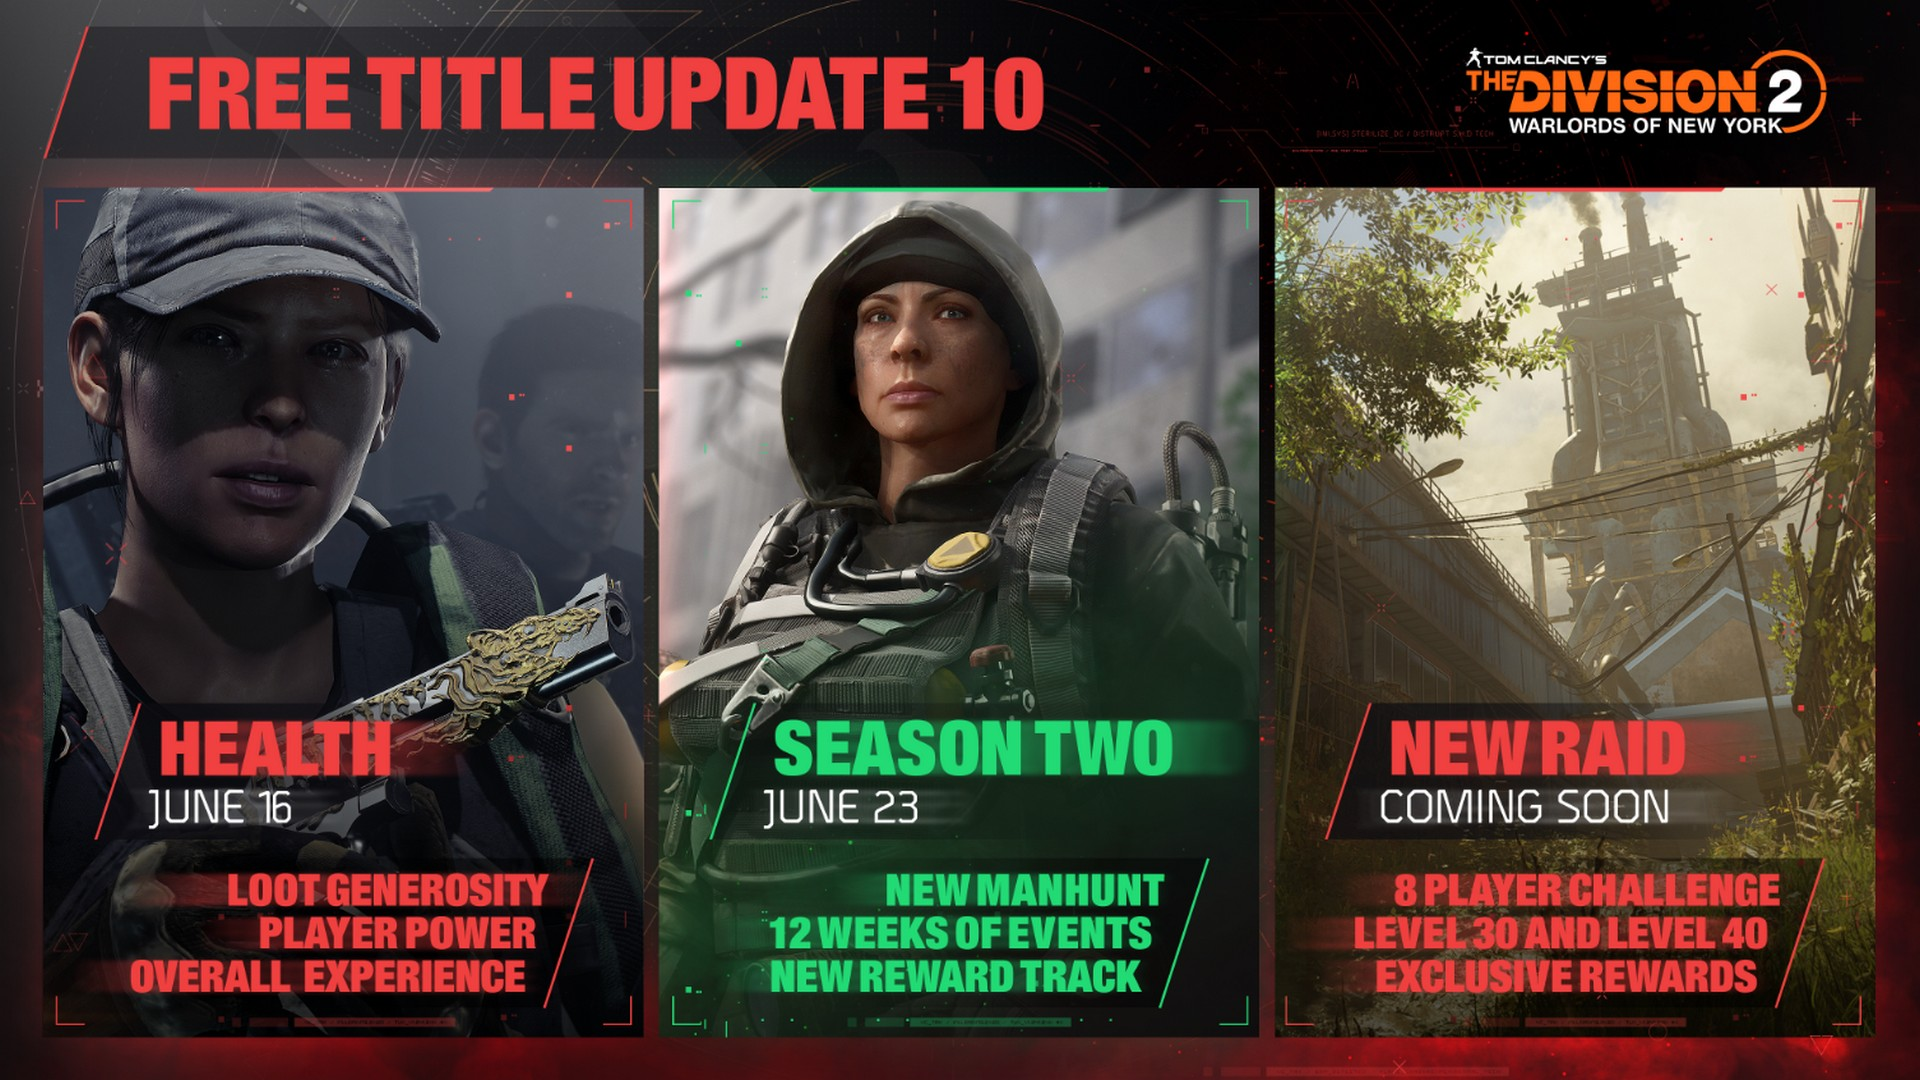 Title Update 10 For Tom Clancy's The Division 2 Will Start Unrolling June 16